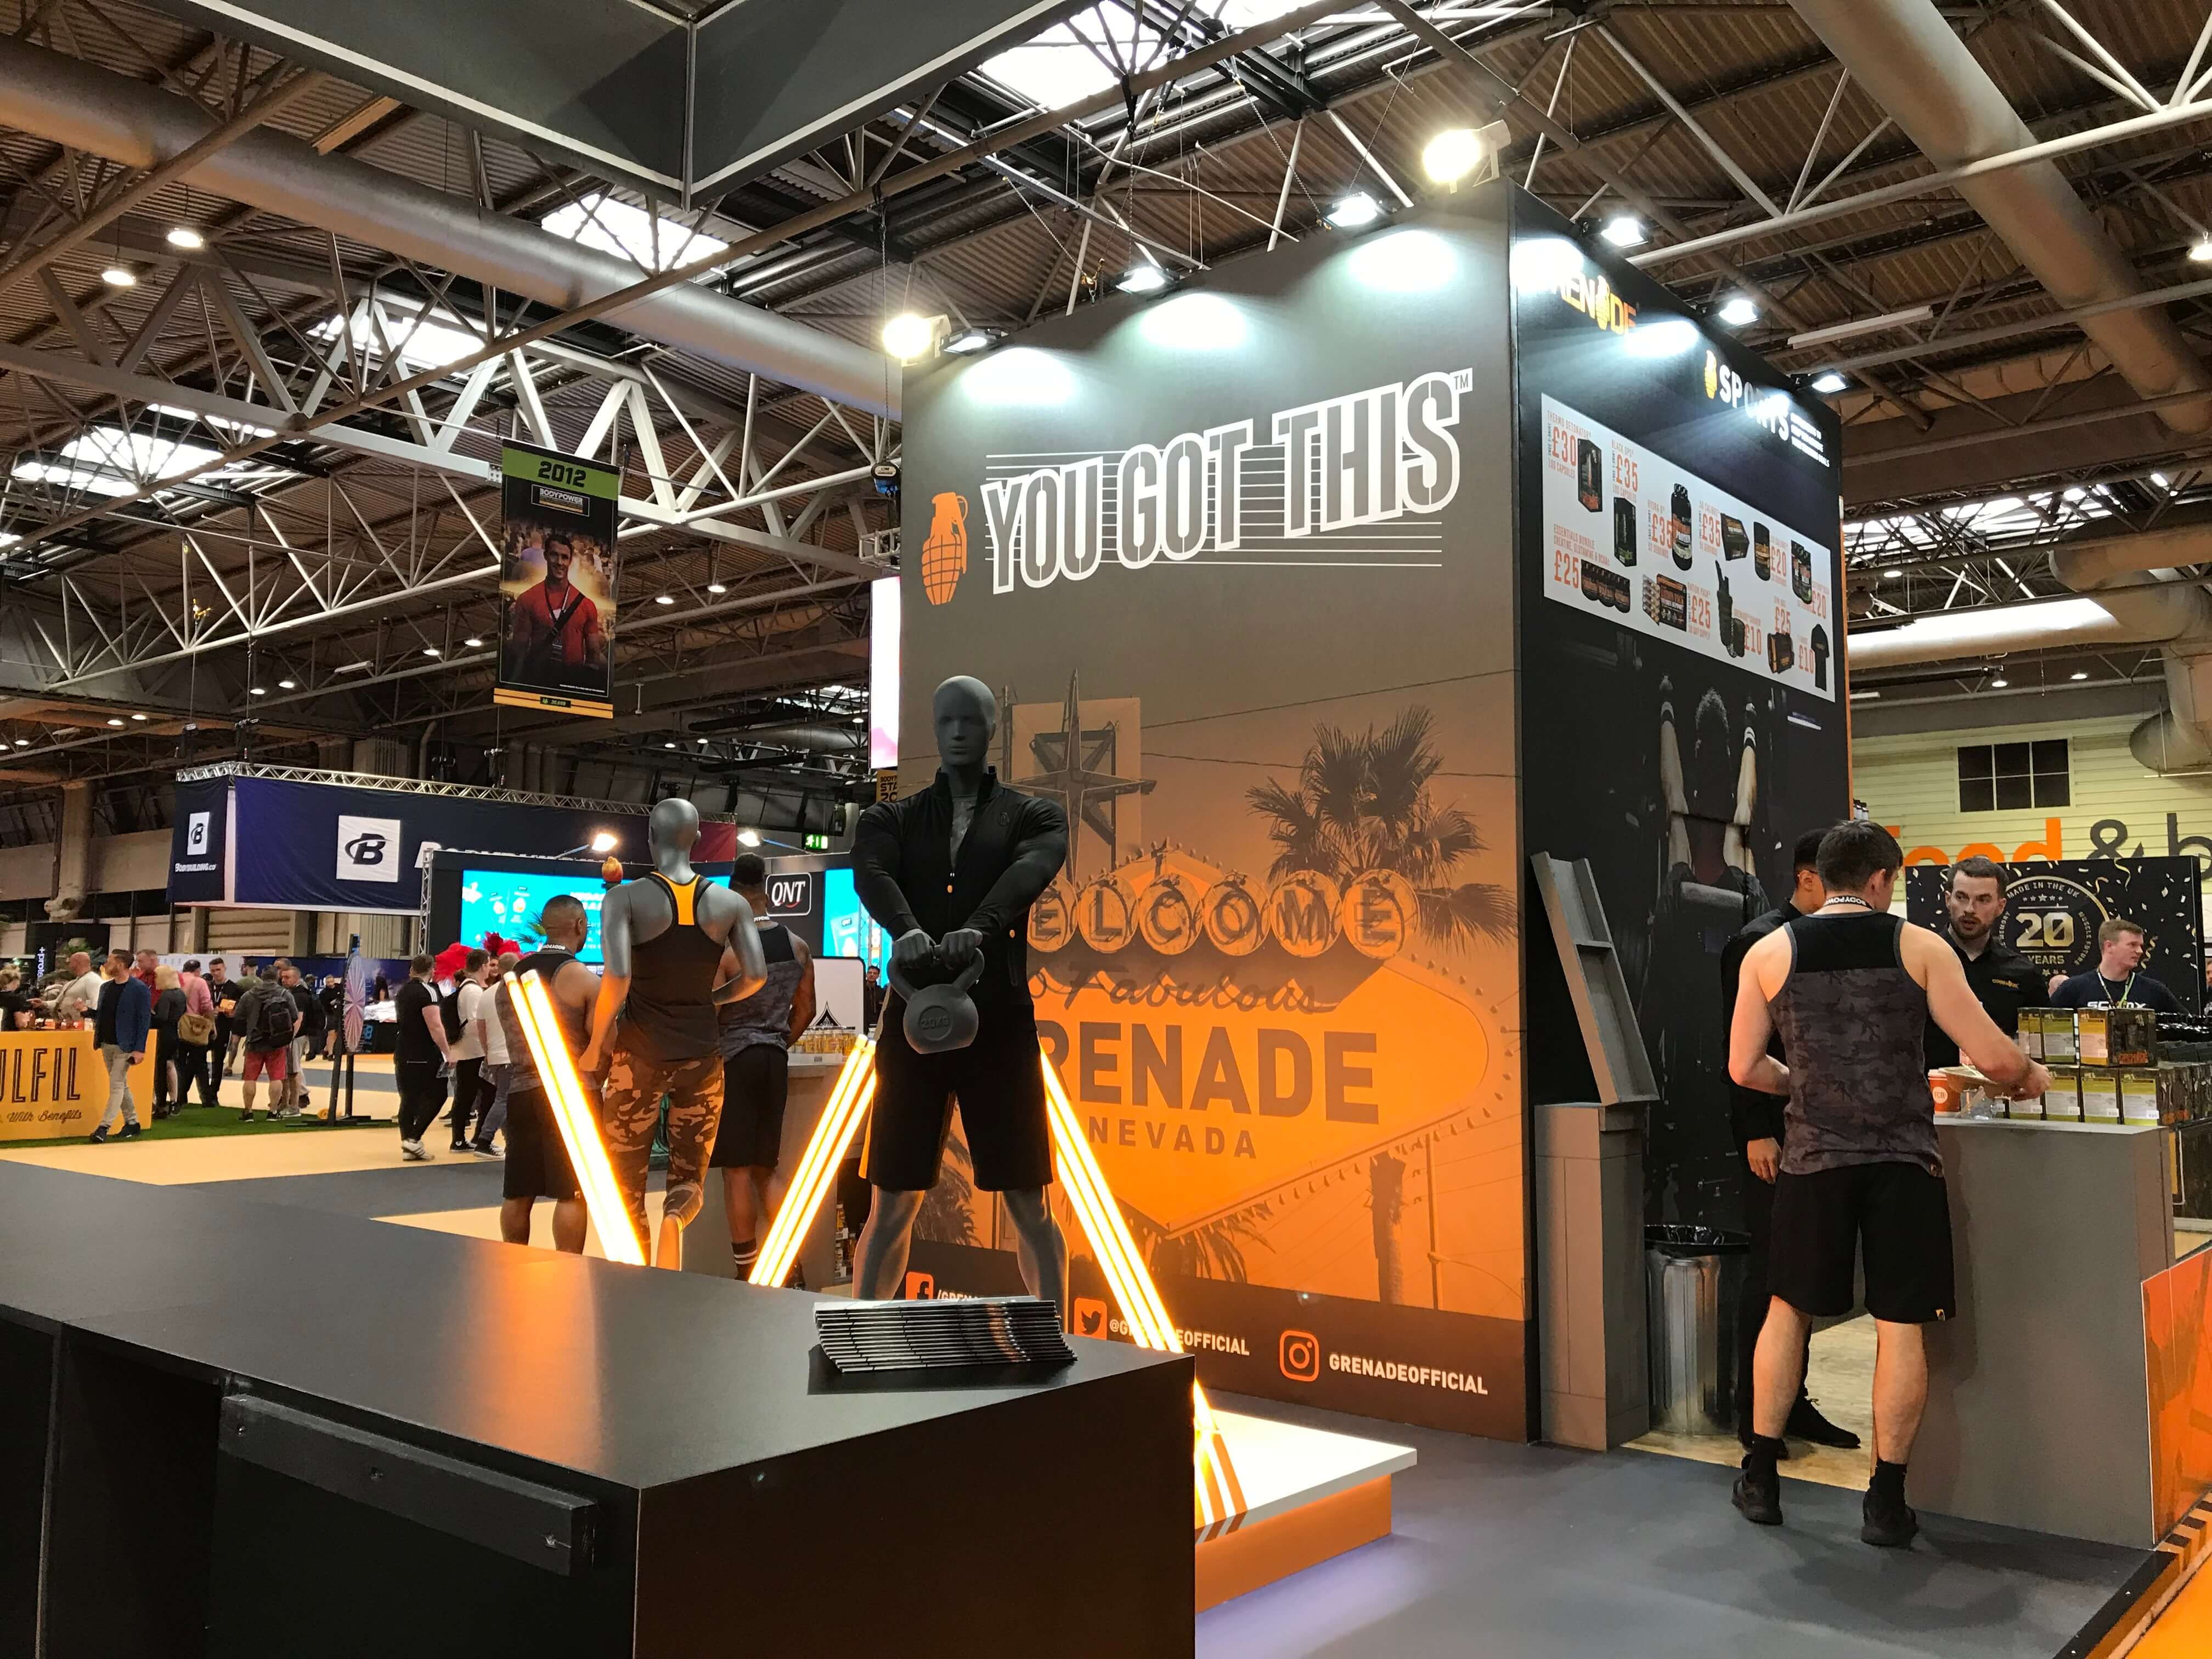 Grenade Body Powr Sport Show Stand Designs Manchester (1)